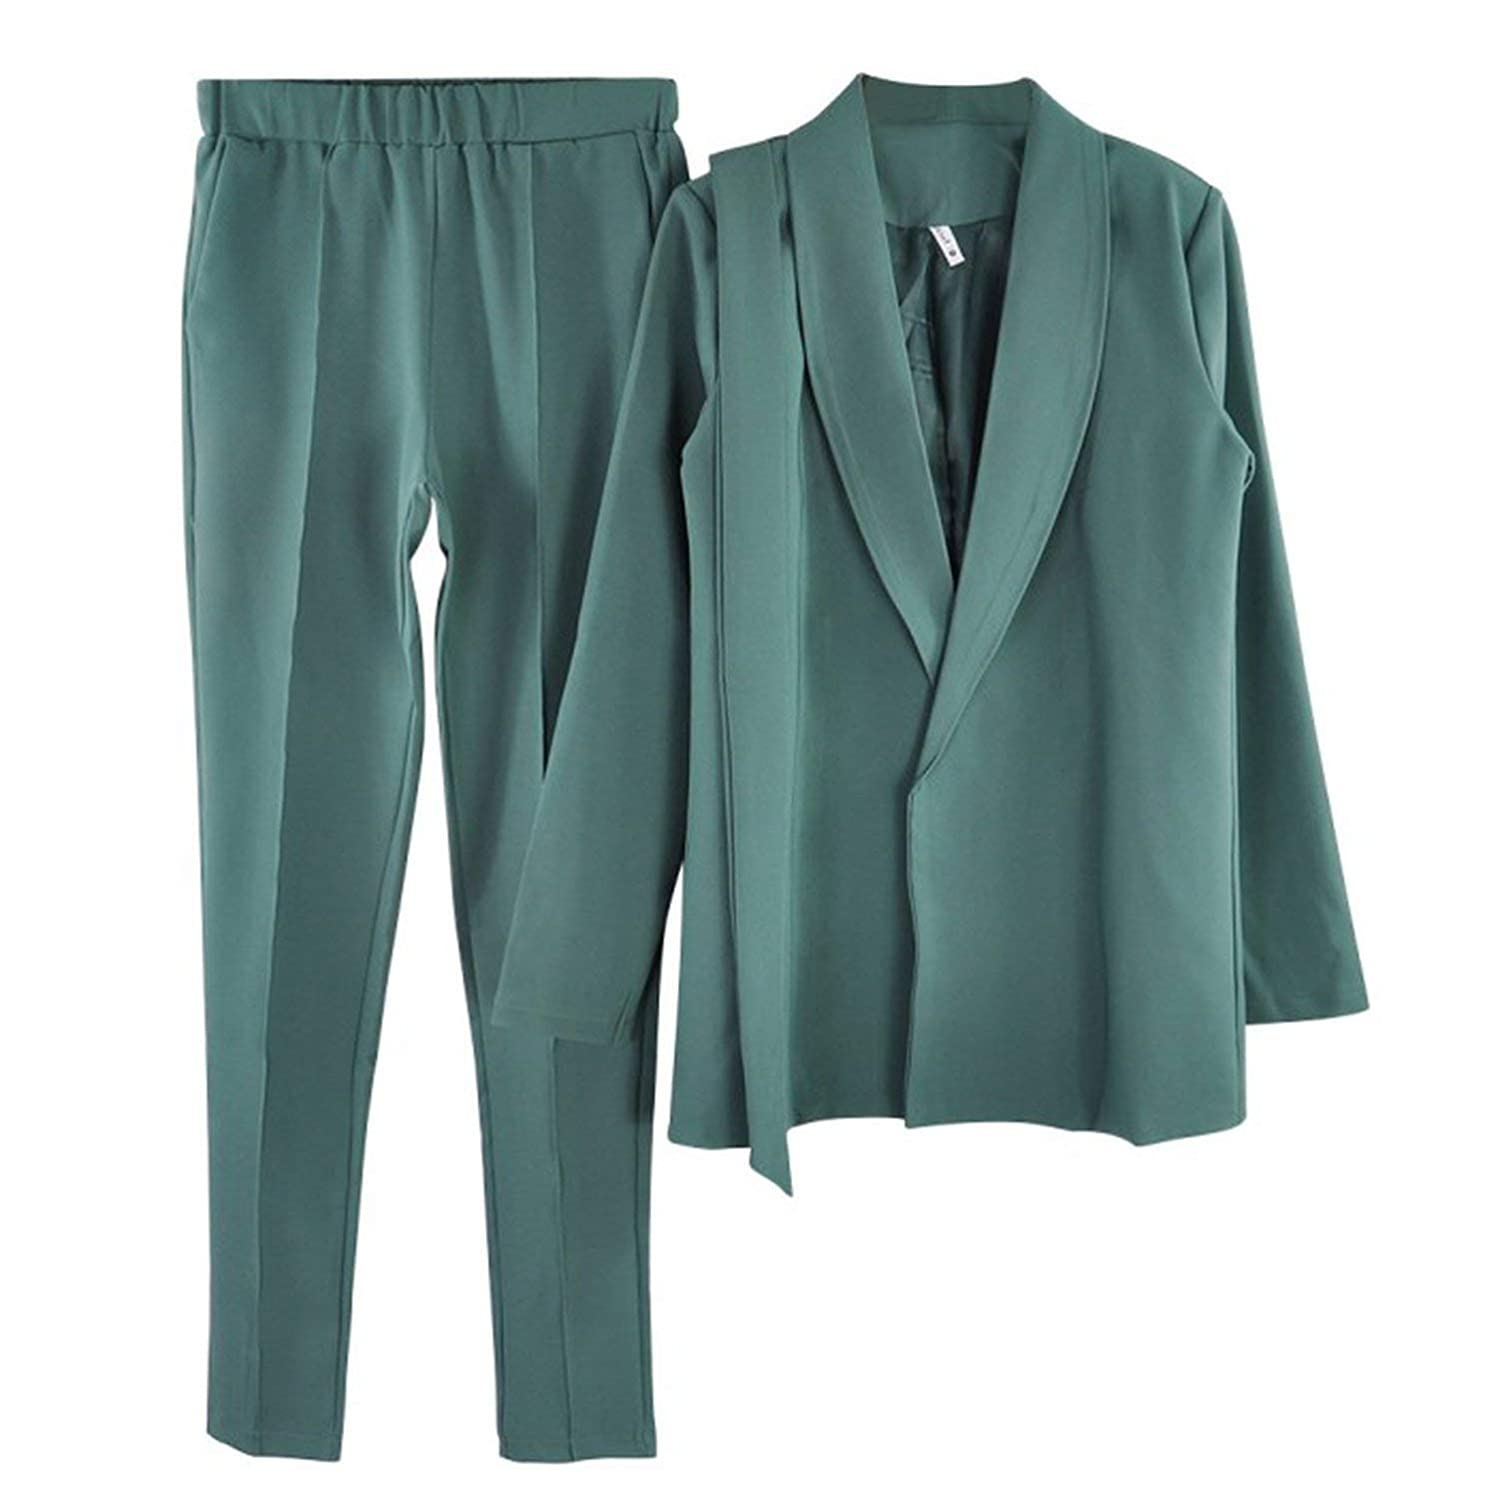 Beans Green rainwaterShop Stylish Office Lady Sets Pant Suits Shawl Collar Belted Blazer Jacket and Pant